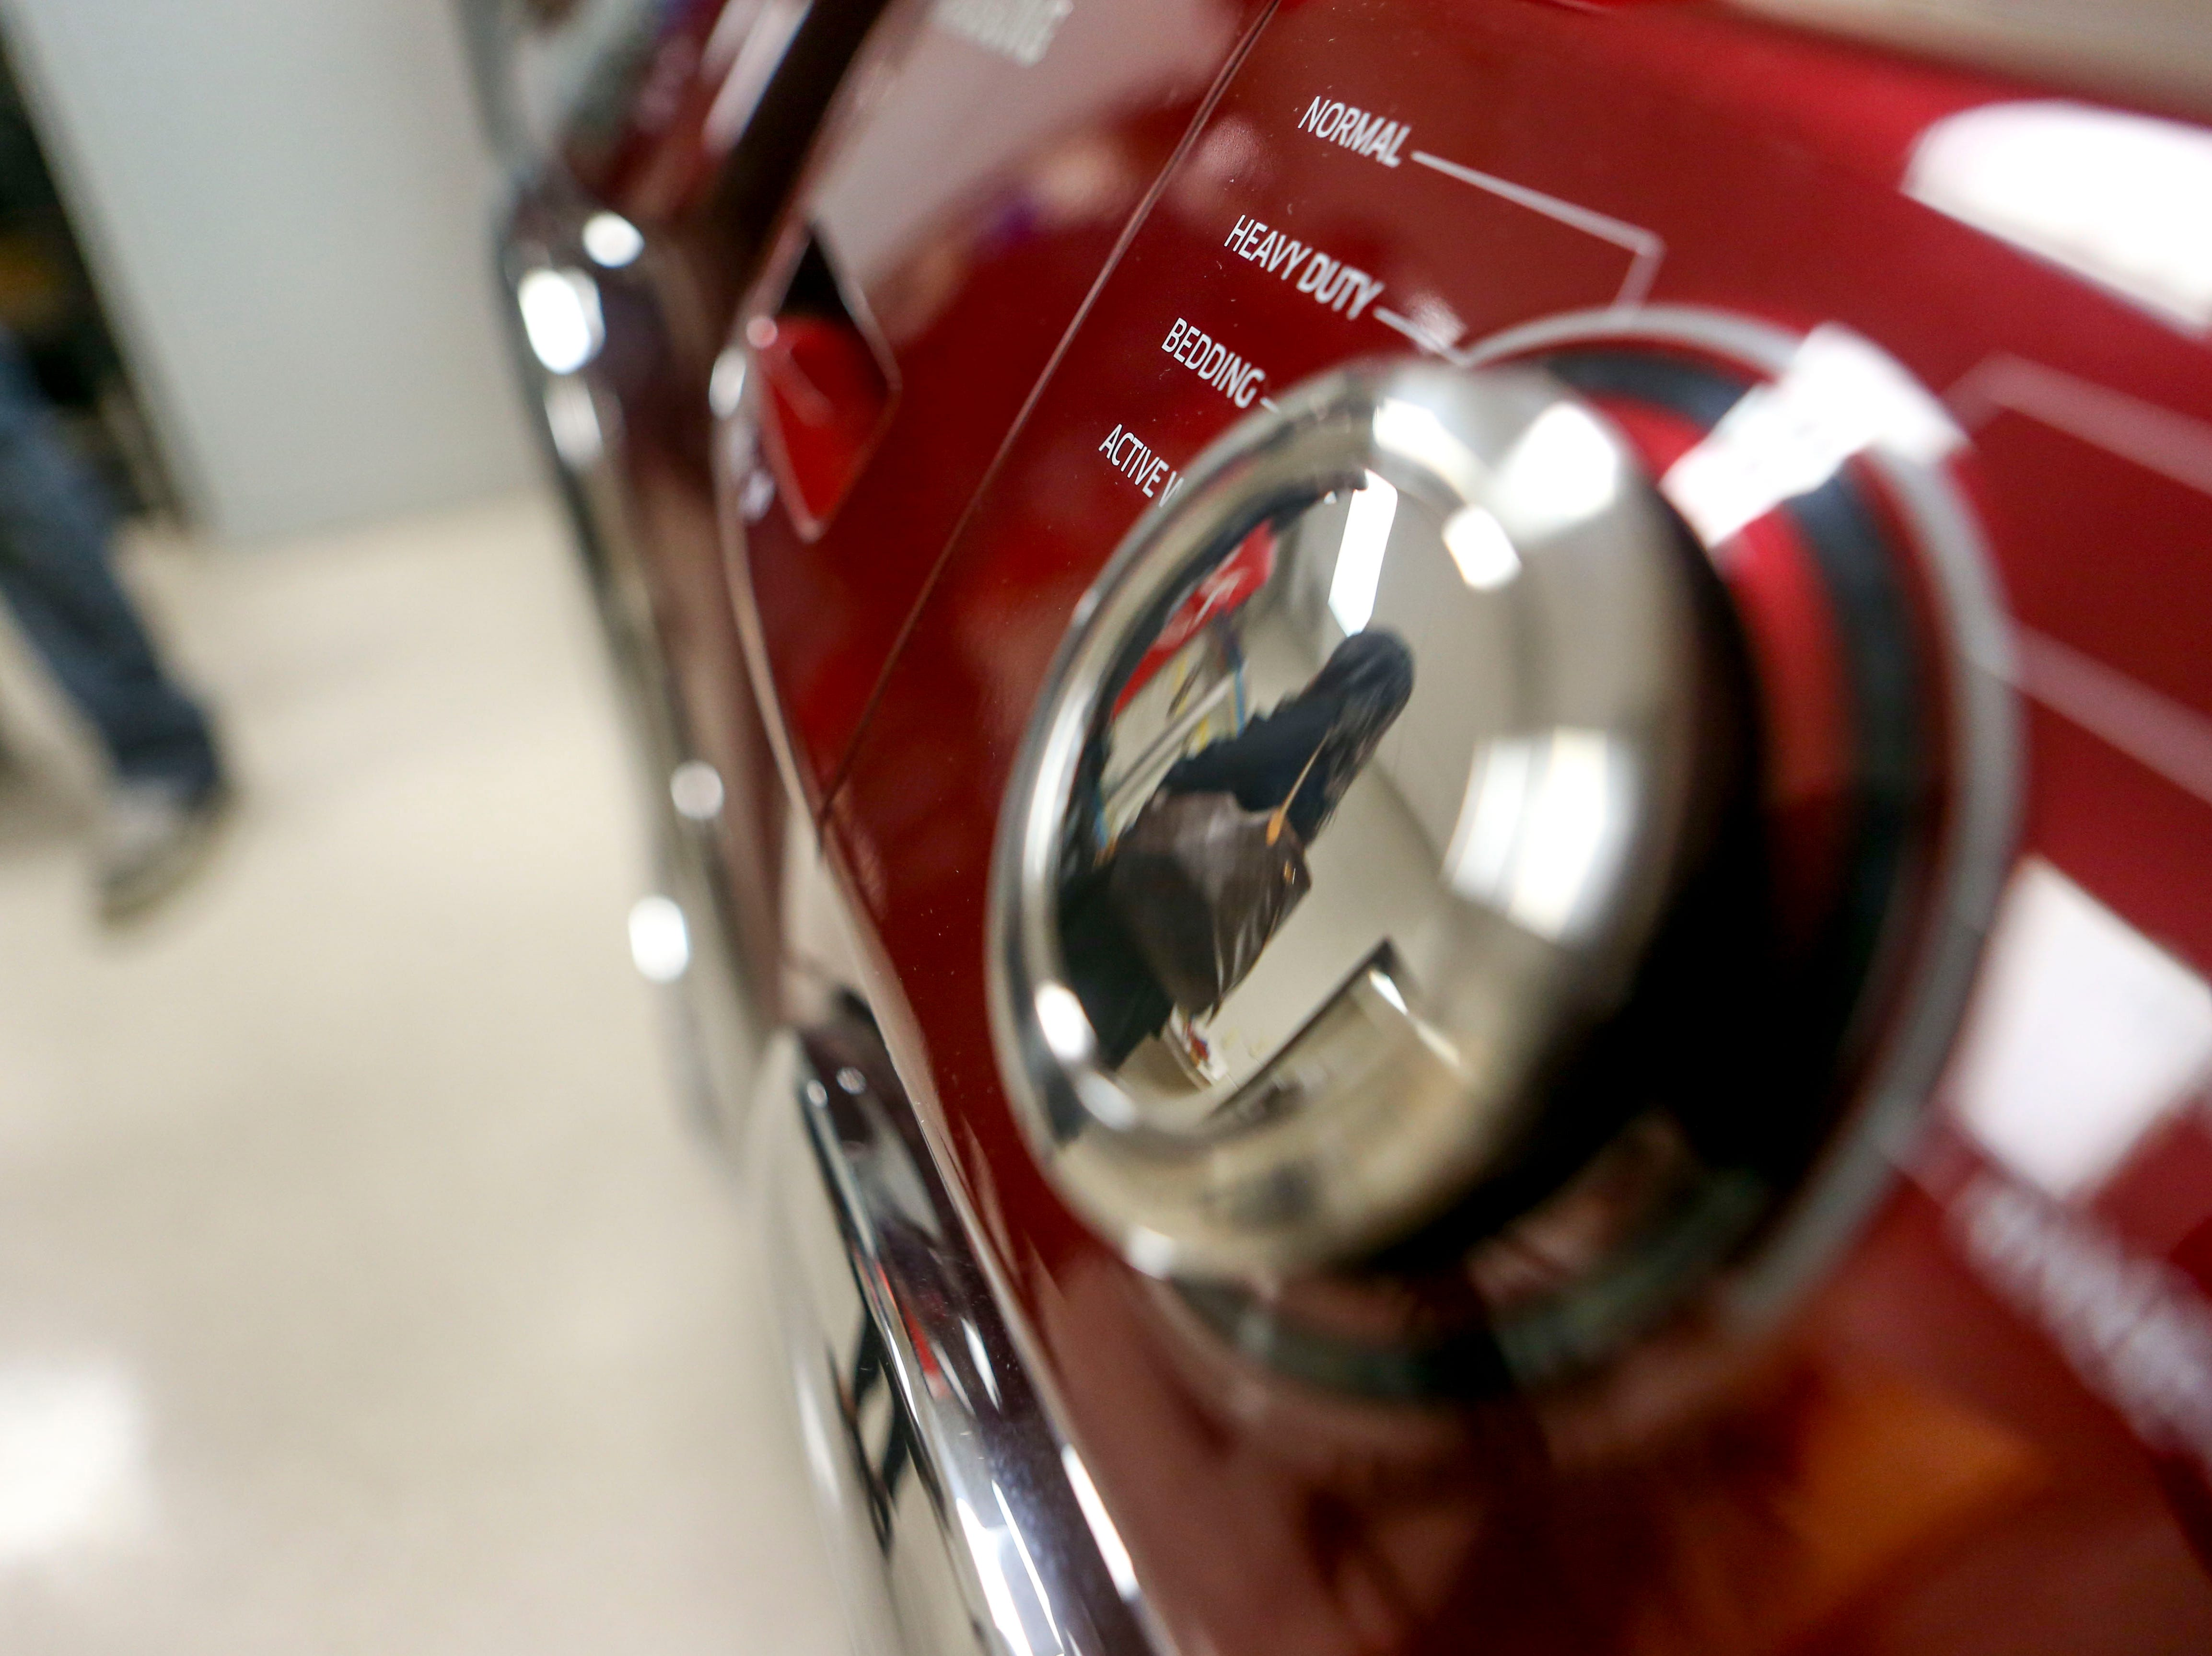 Spectators can be seen in the reflection of the dial on a new washer that was donated to the Jackson Careers and Technology Middle School  in Jackson, Tenn., on Friday, Jan. 18, 2019.